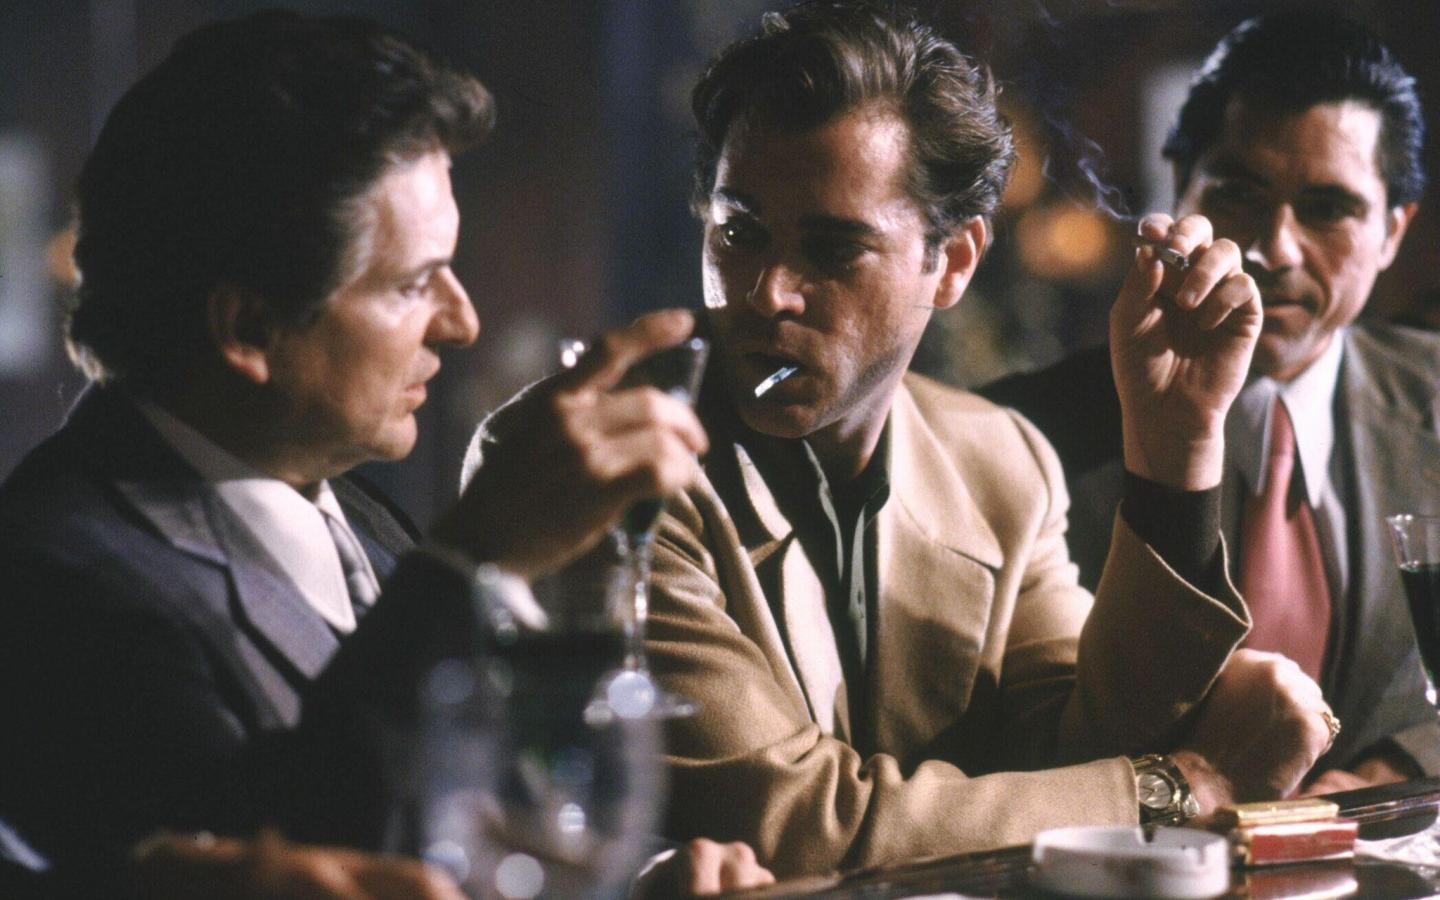 1440x900 - Goodfellas Wallpapers 22